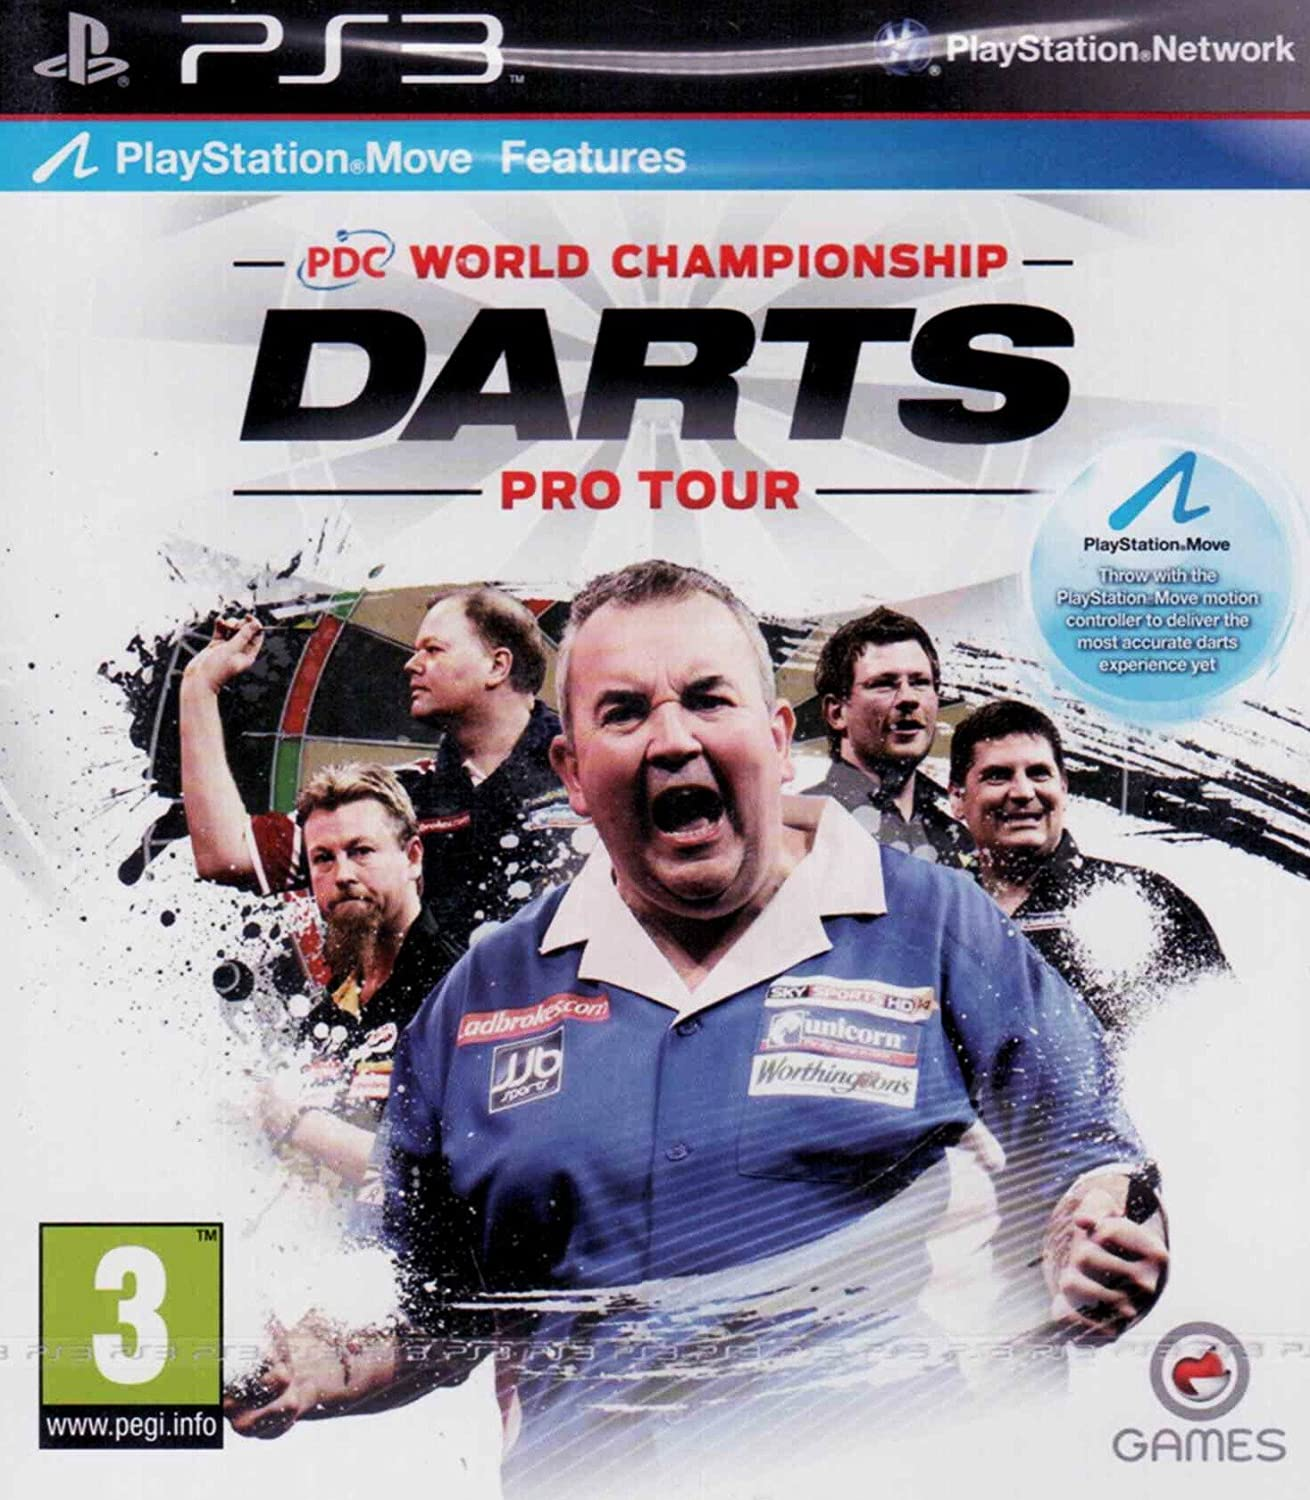 PDC World Championship Darts Pro Tour guitar hero world tour купить pc